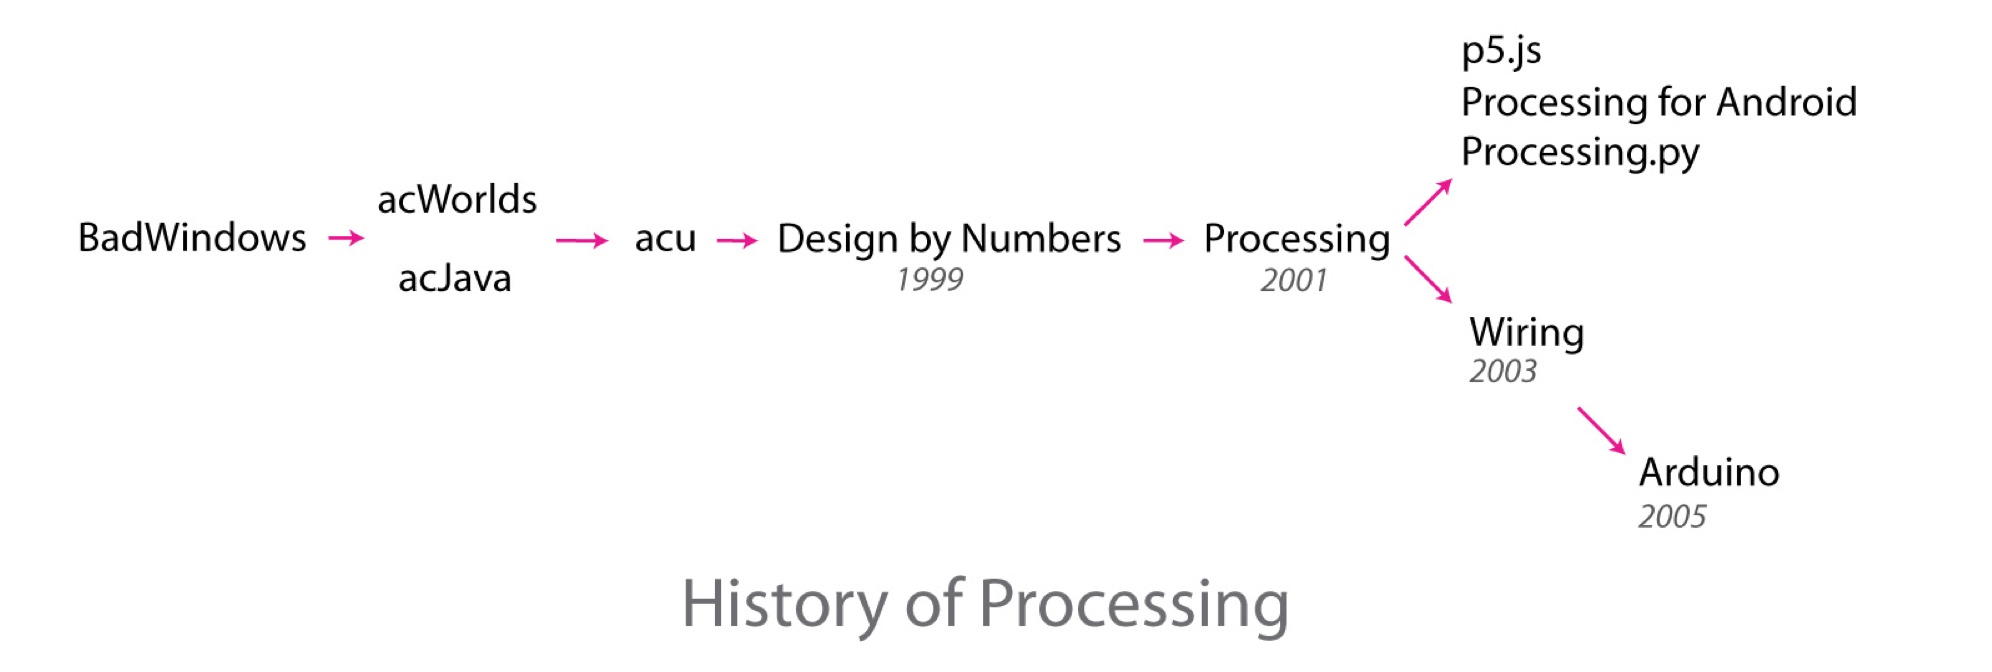 history-of-processing